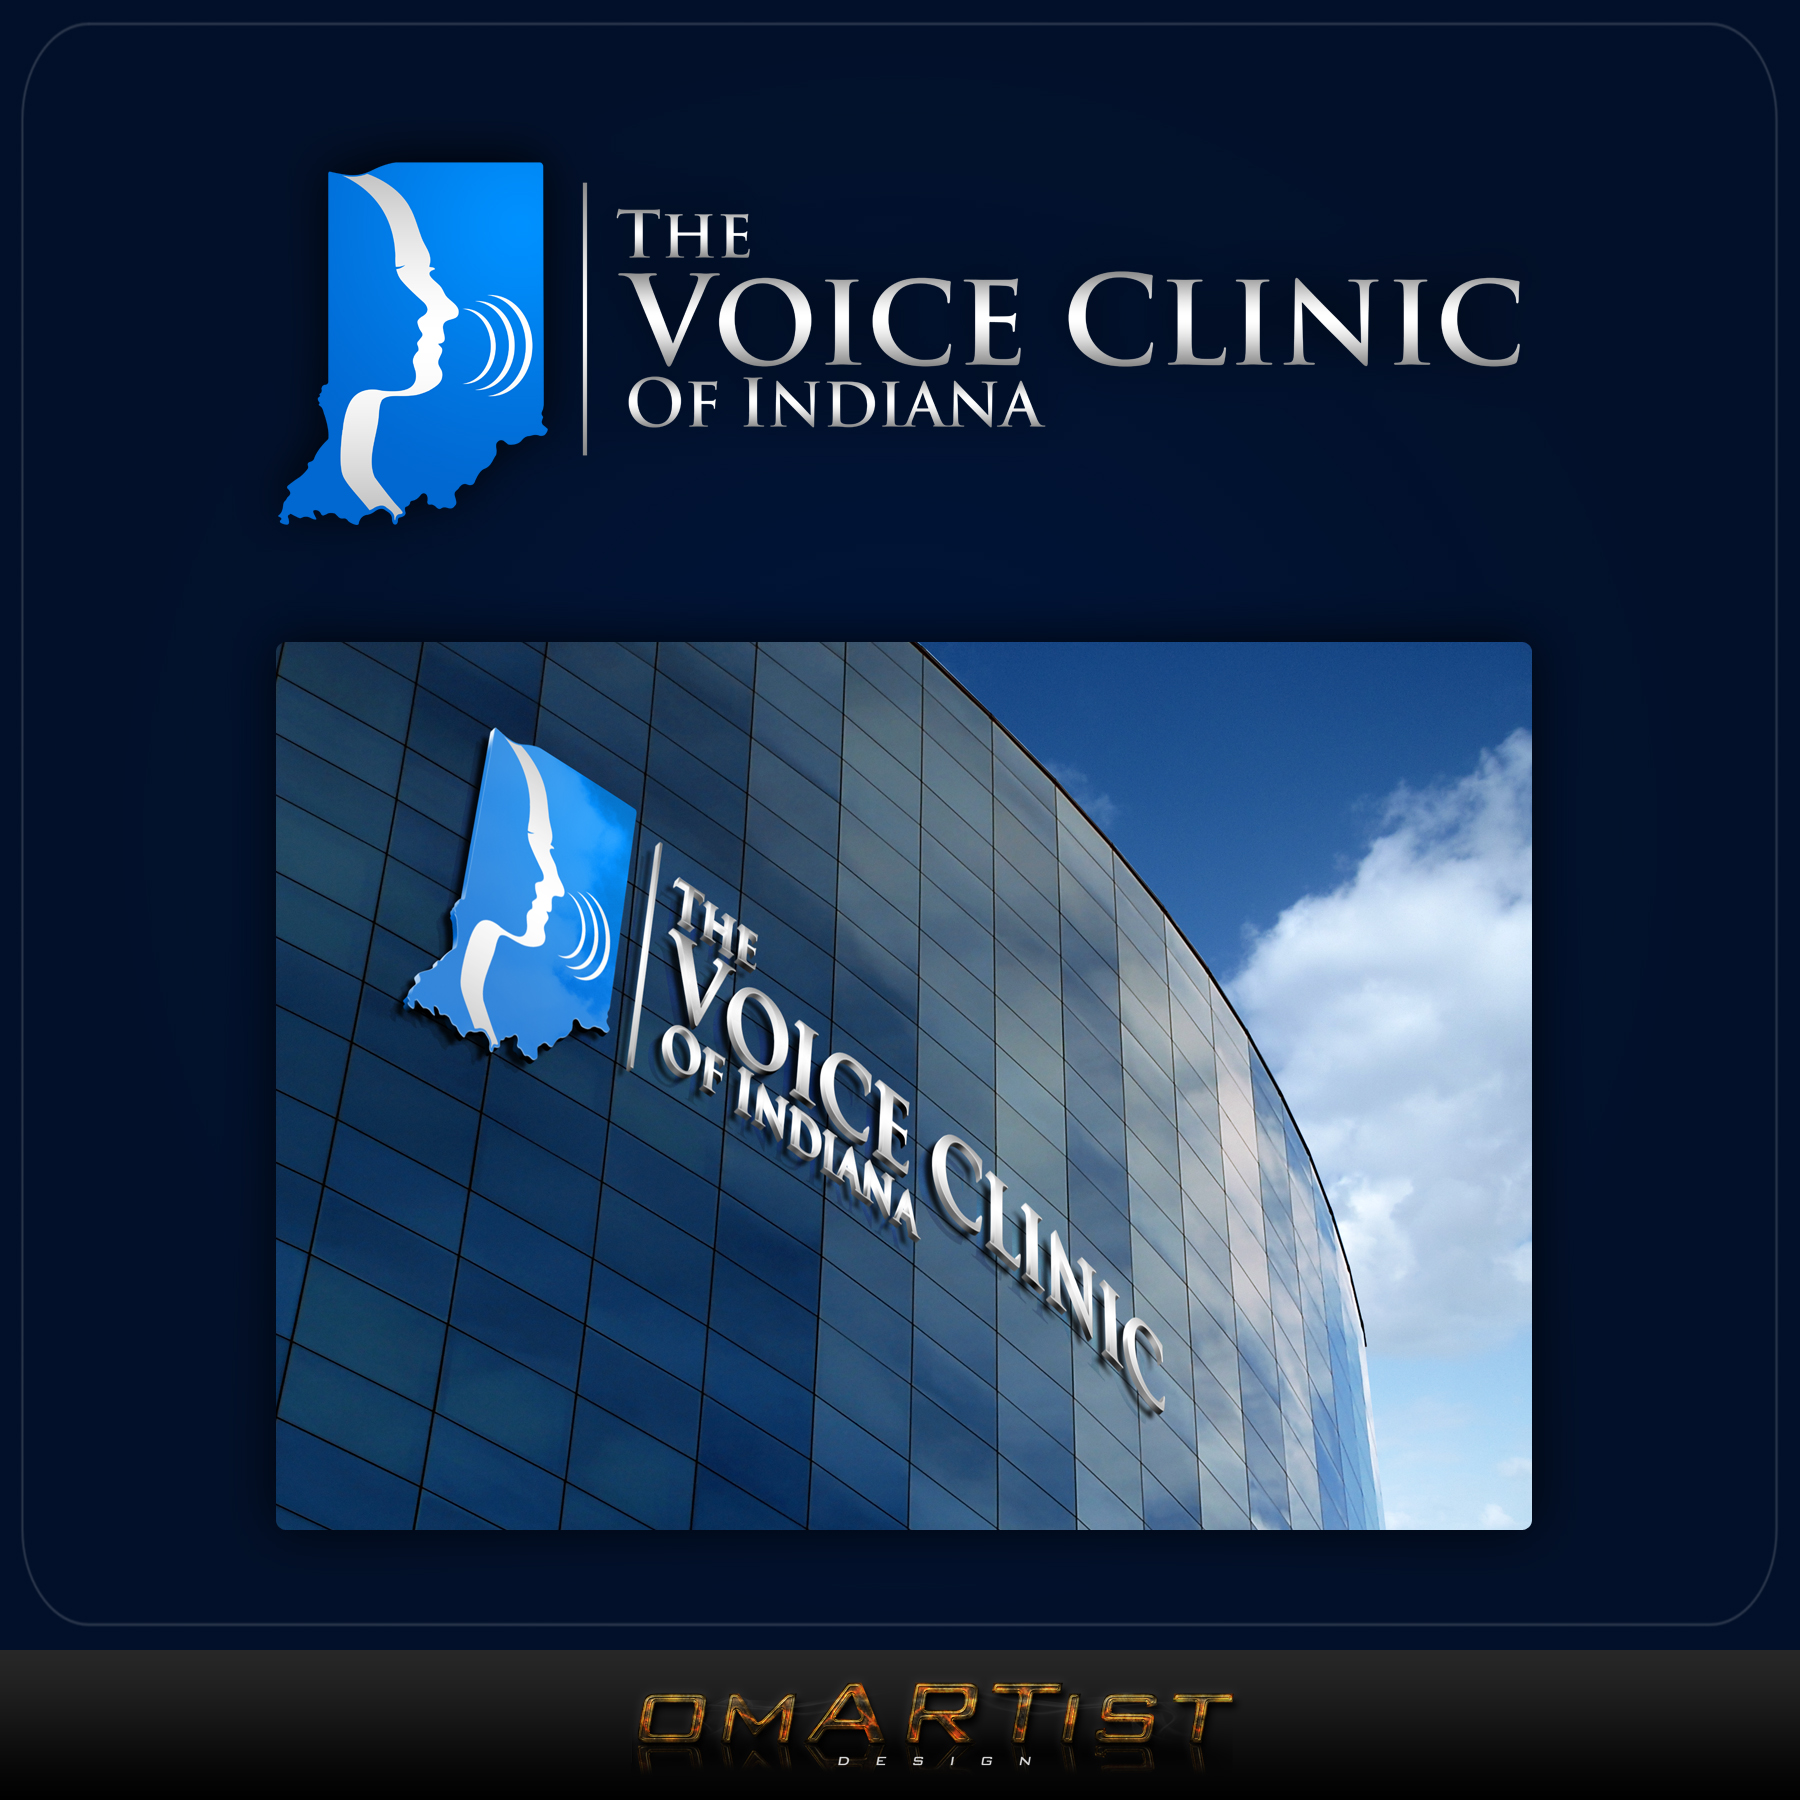 Logo Design by omARTist - Entry No. 47 in the Logo Design Contest Logo Design for The Voice Clinic of Indiana.